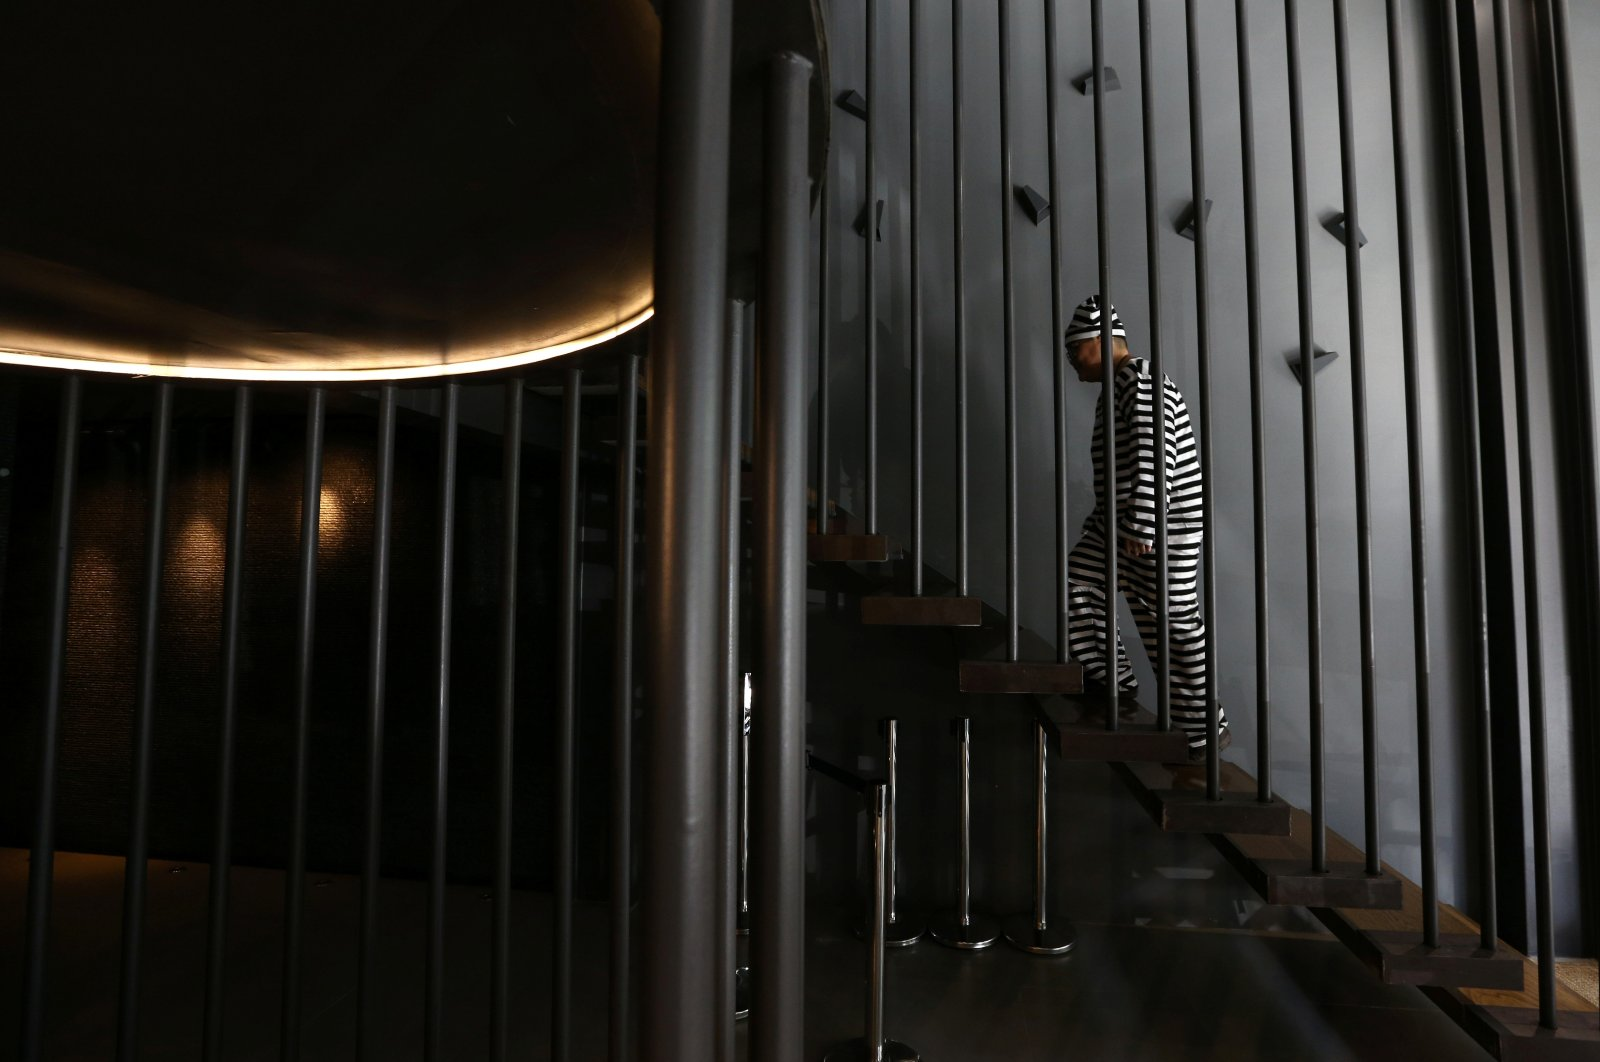 A hotel guest wearing prisoner uniform walks inside the Sook Station Bangkok's first prison-themed hostel, Thailand, Aug. 2, 2017. (Reuters Photo)